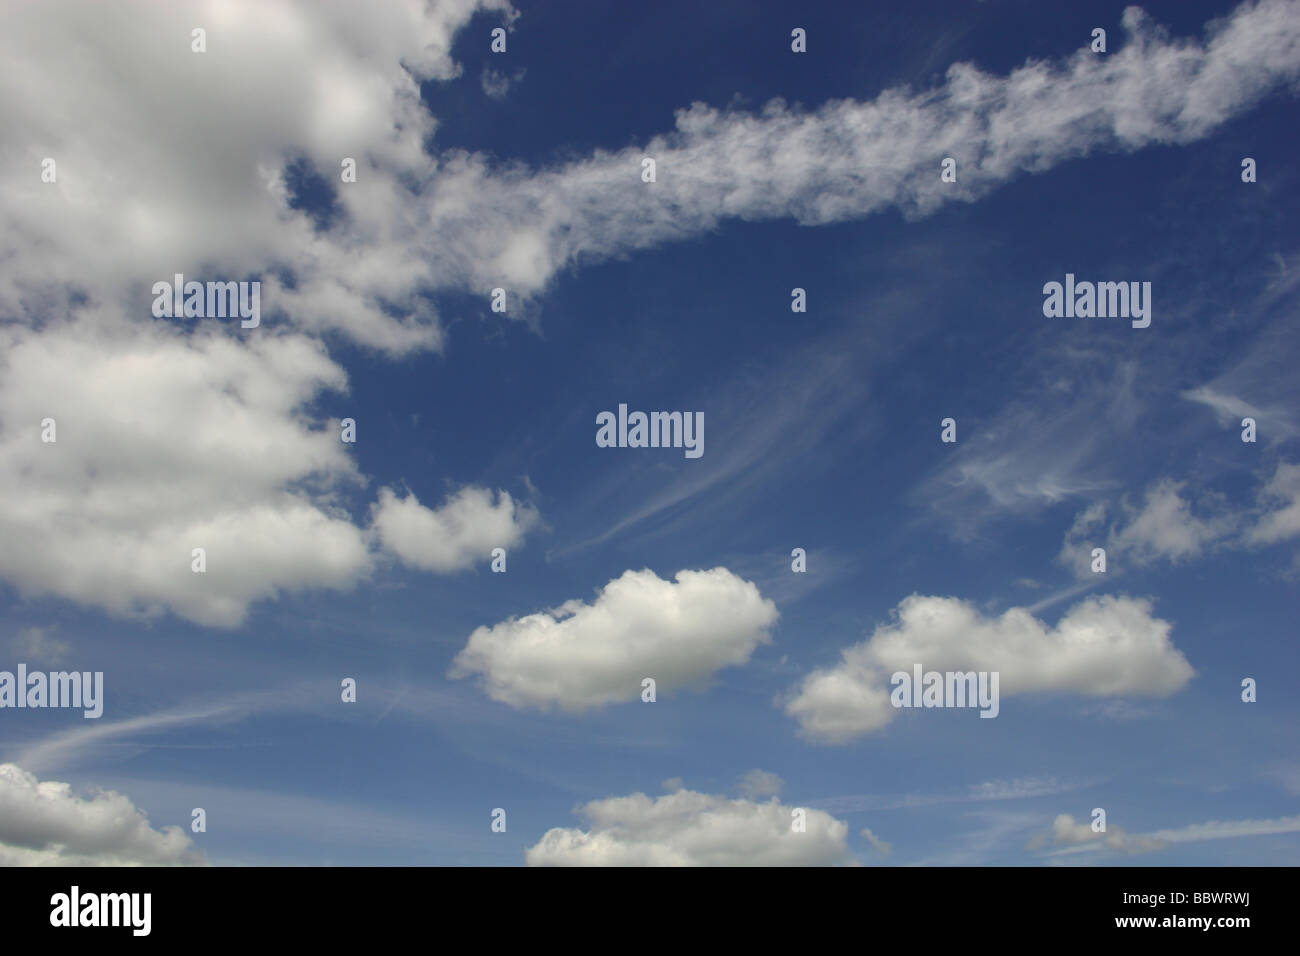 blue sky cloud formation - Stock Image